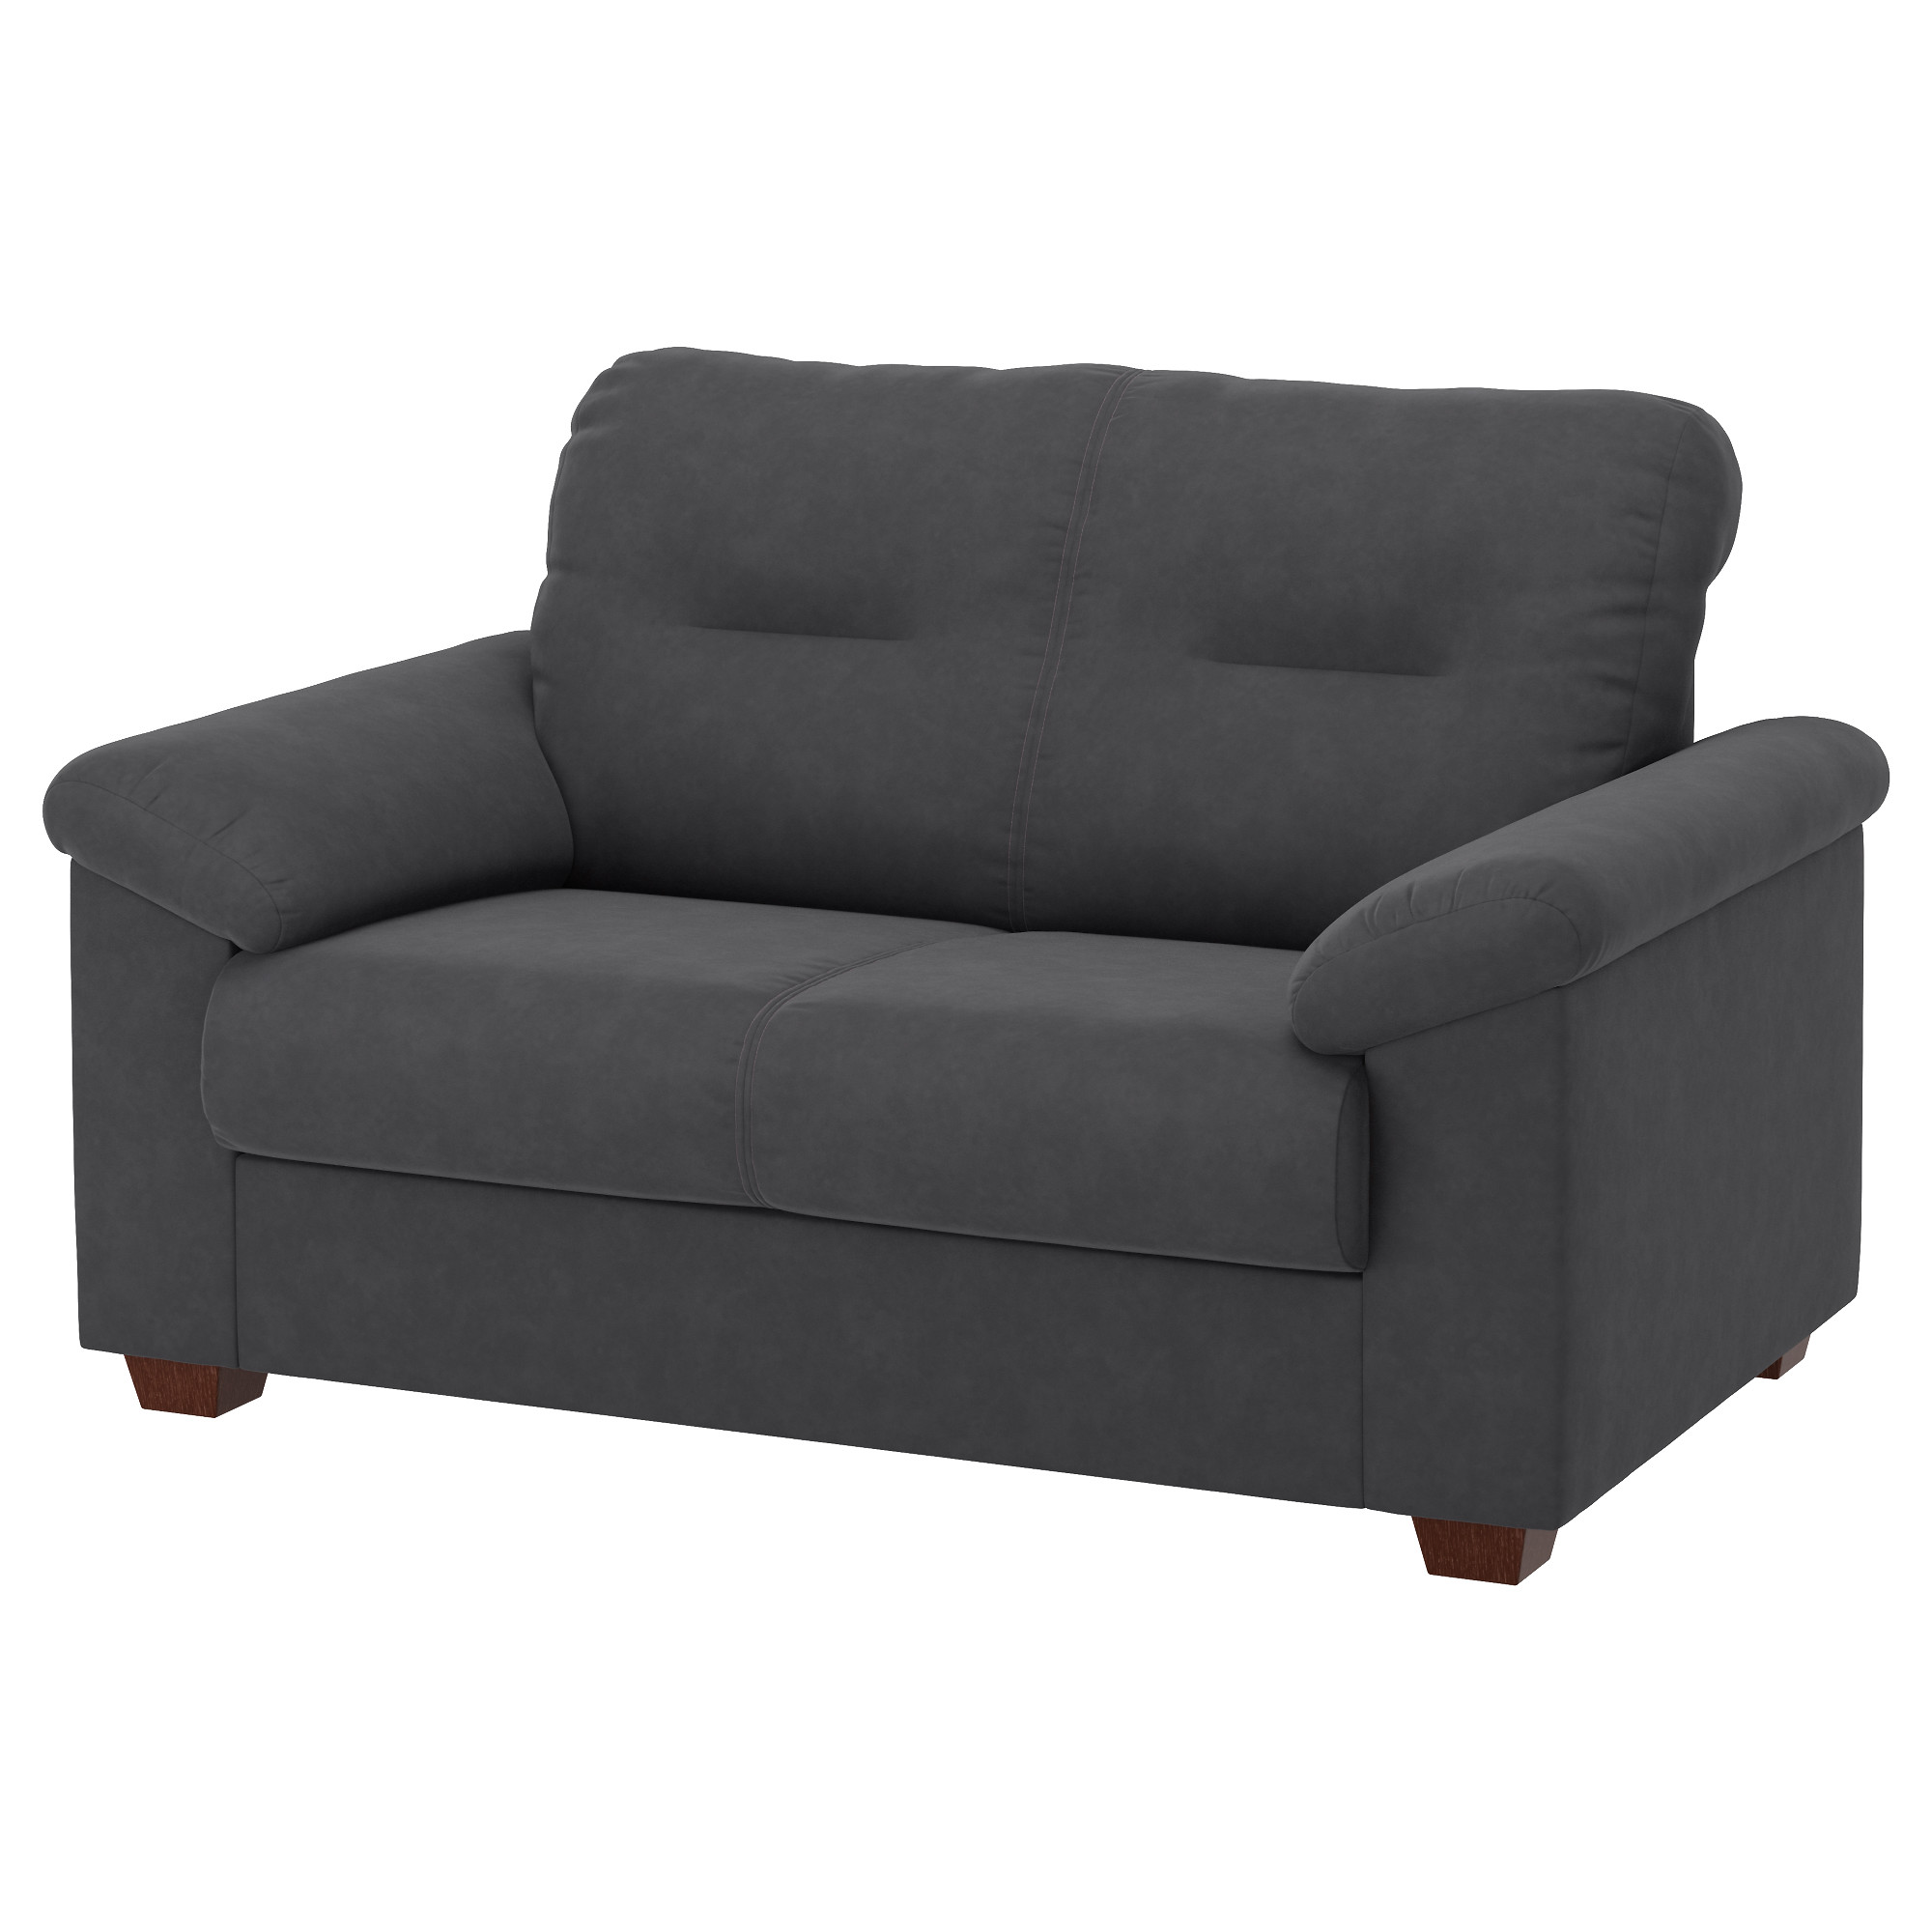 Sofas de ikea vilasund sofa bed with chaise longue for Sofas de 2 plazas pequenos